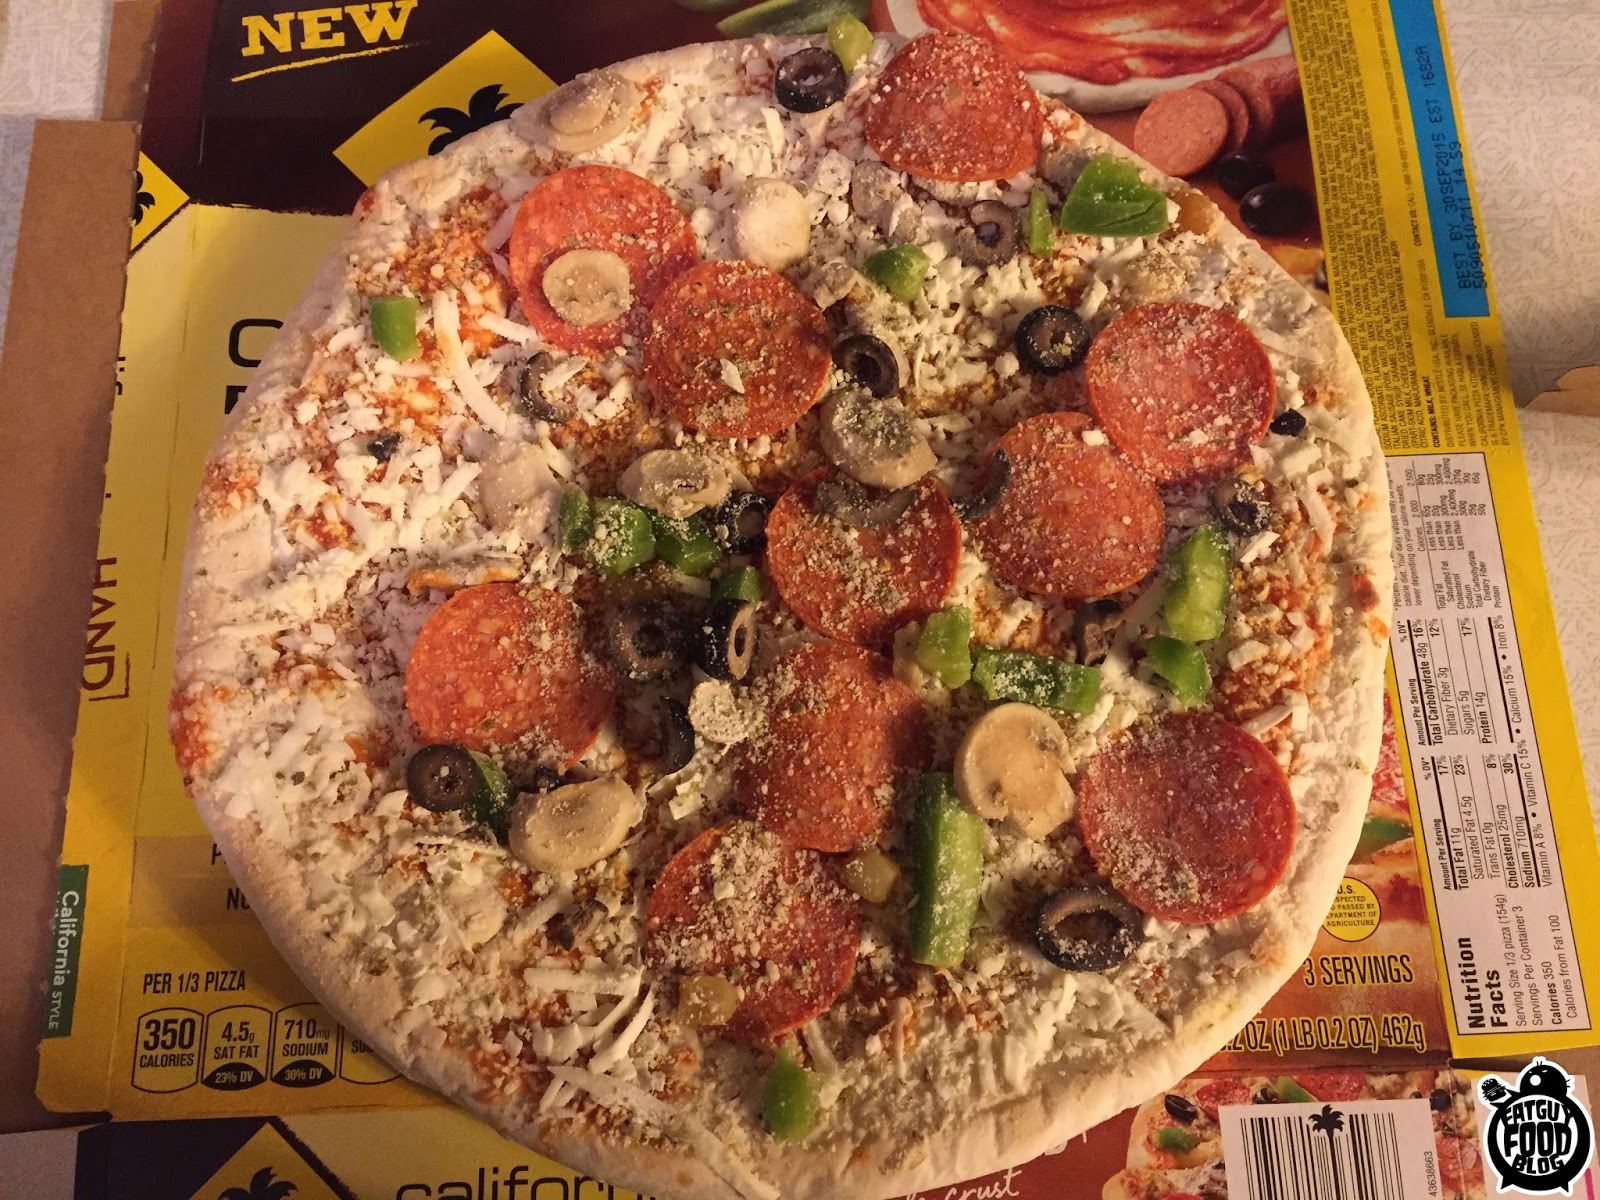 California Pizza Kitchen Pepperoni Pizza Fatguyfoodblog California Pizza Kitchen New Flavors The Works